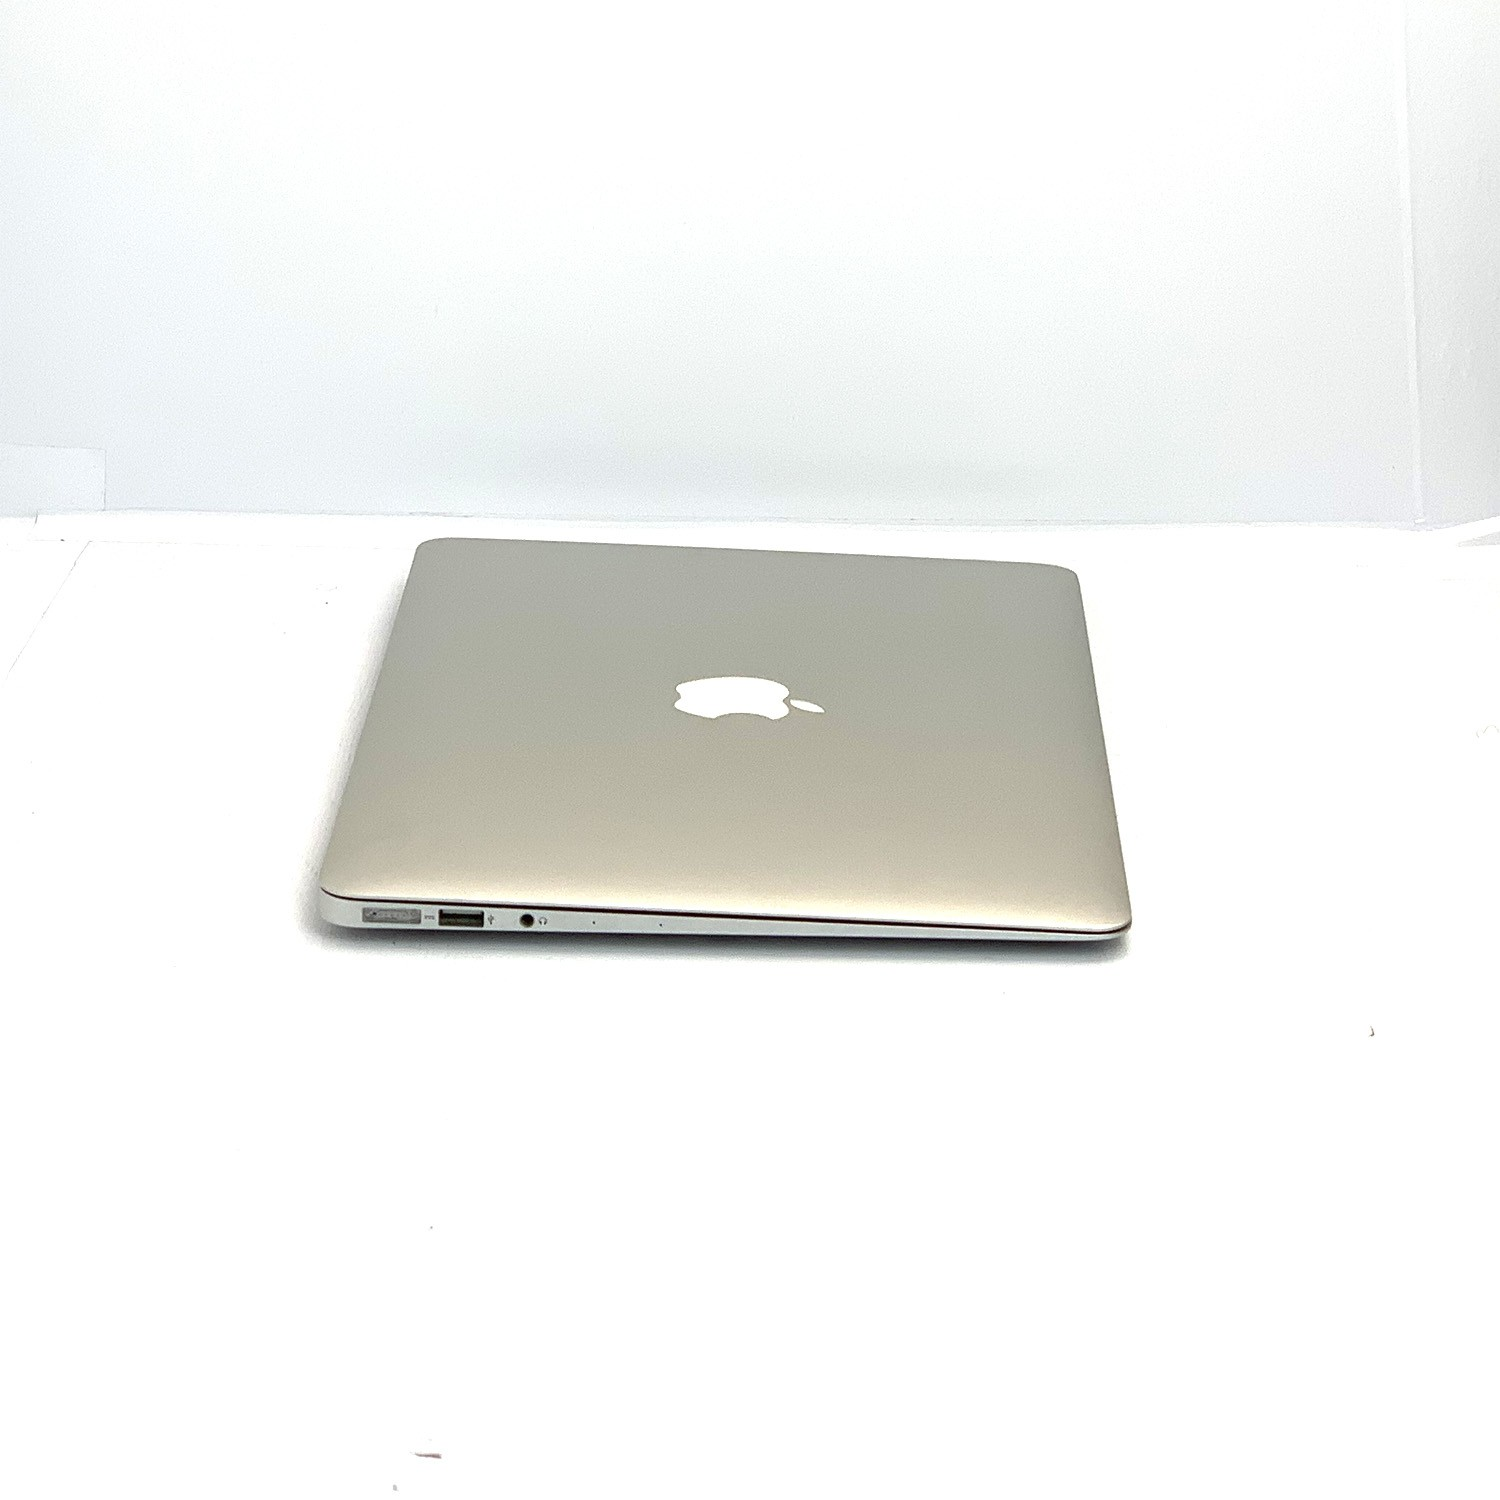 Macbook Air 13 i7 1.7Ghz 8GB 256GB SSD BTO/CTO Seminovo